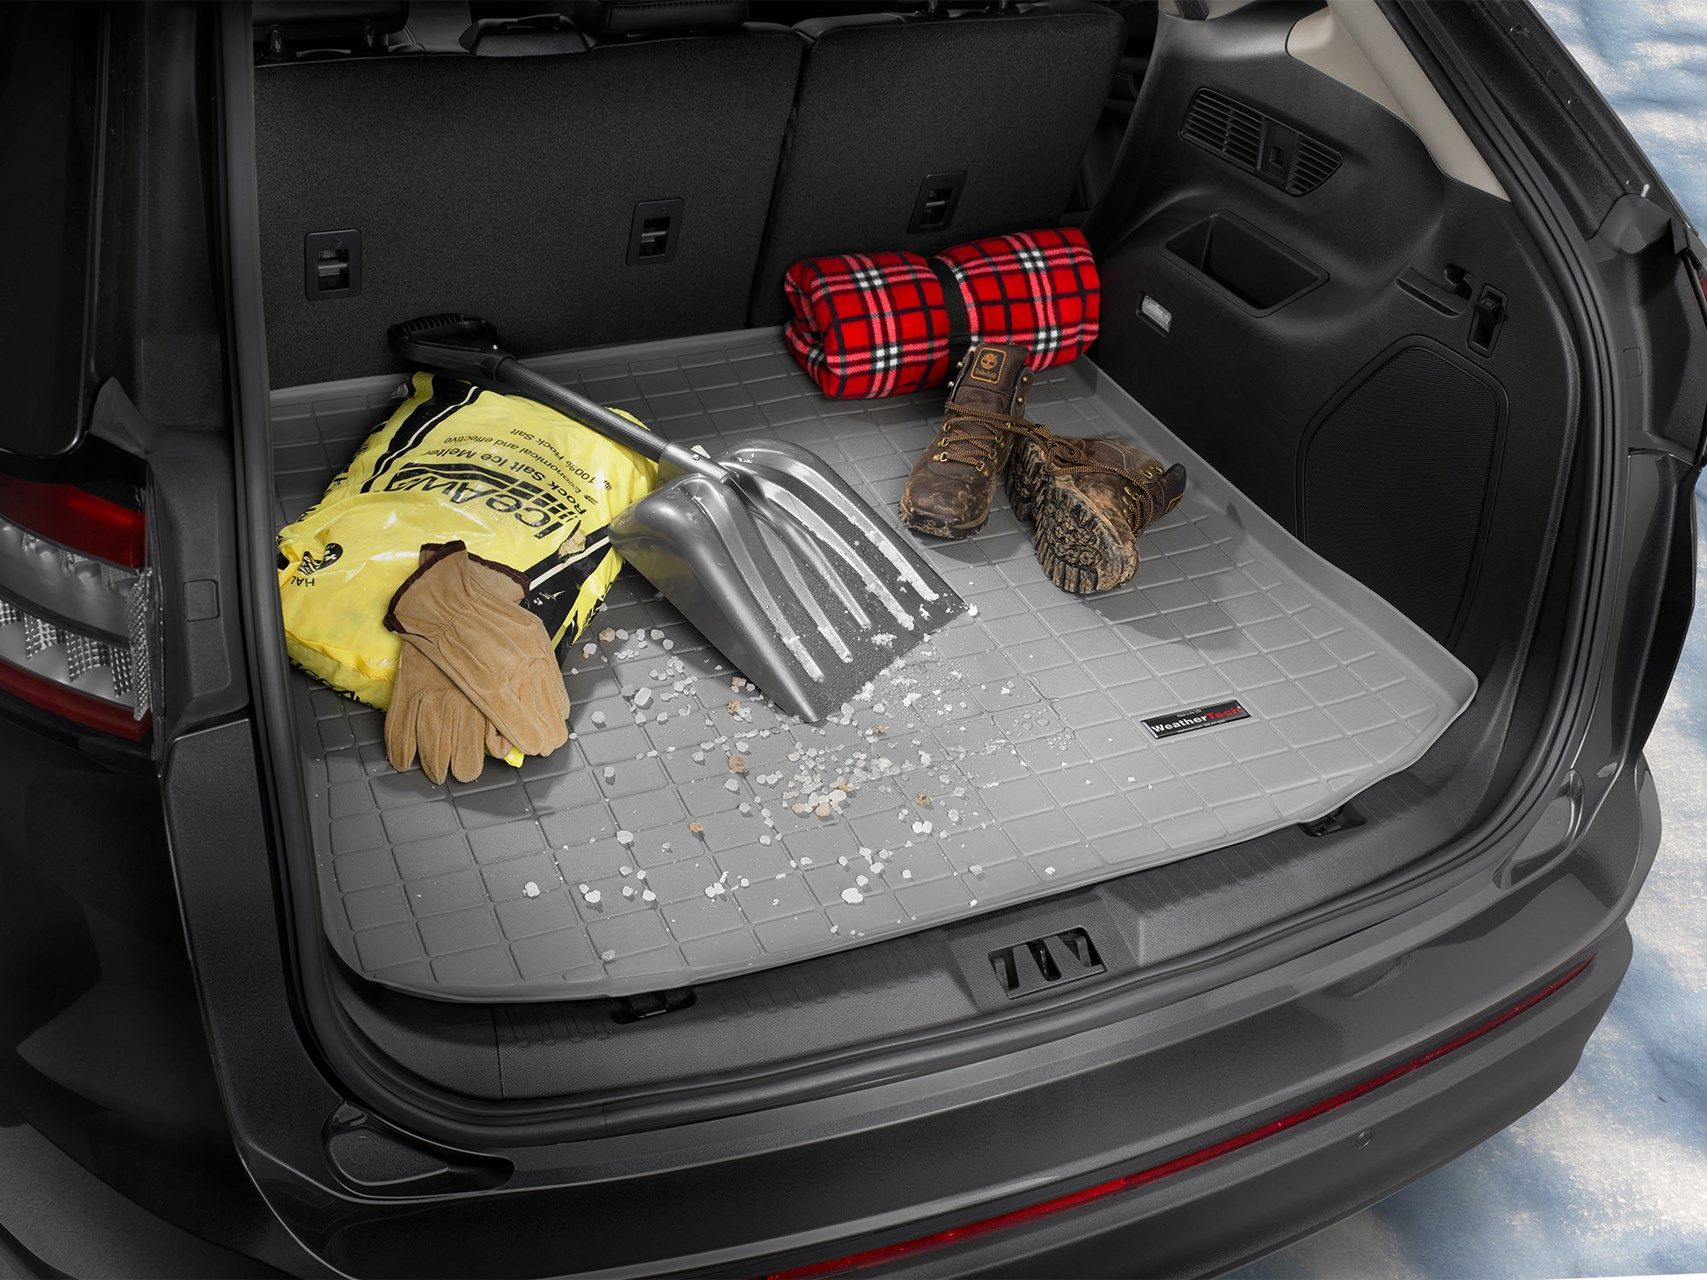 2015 Ford Escape Cargo Mat and Trunk Liner for Cars SUVs